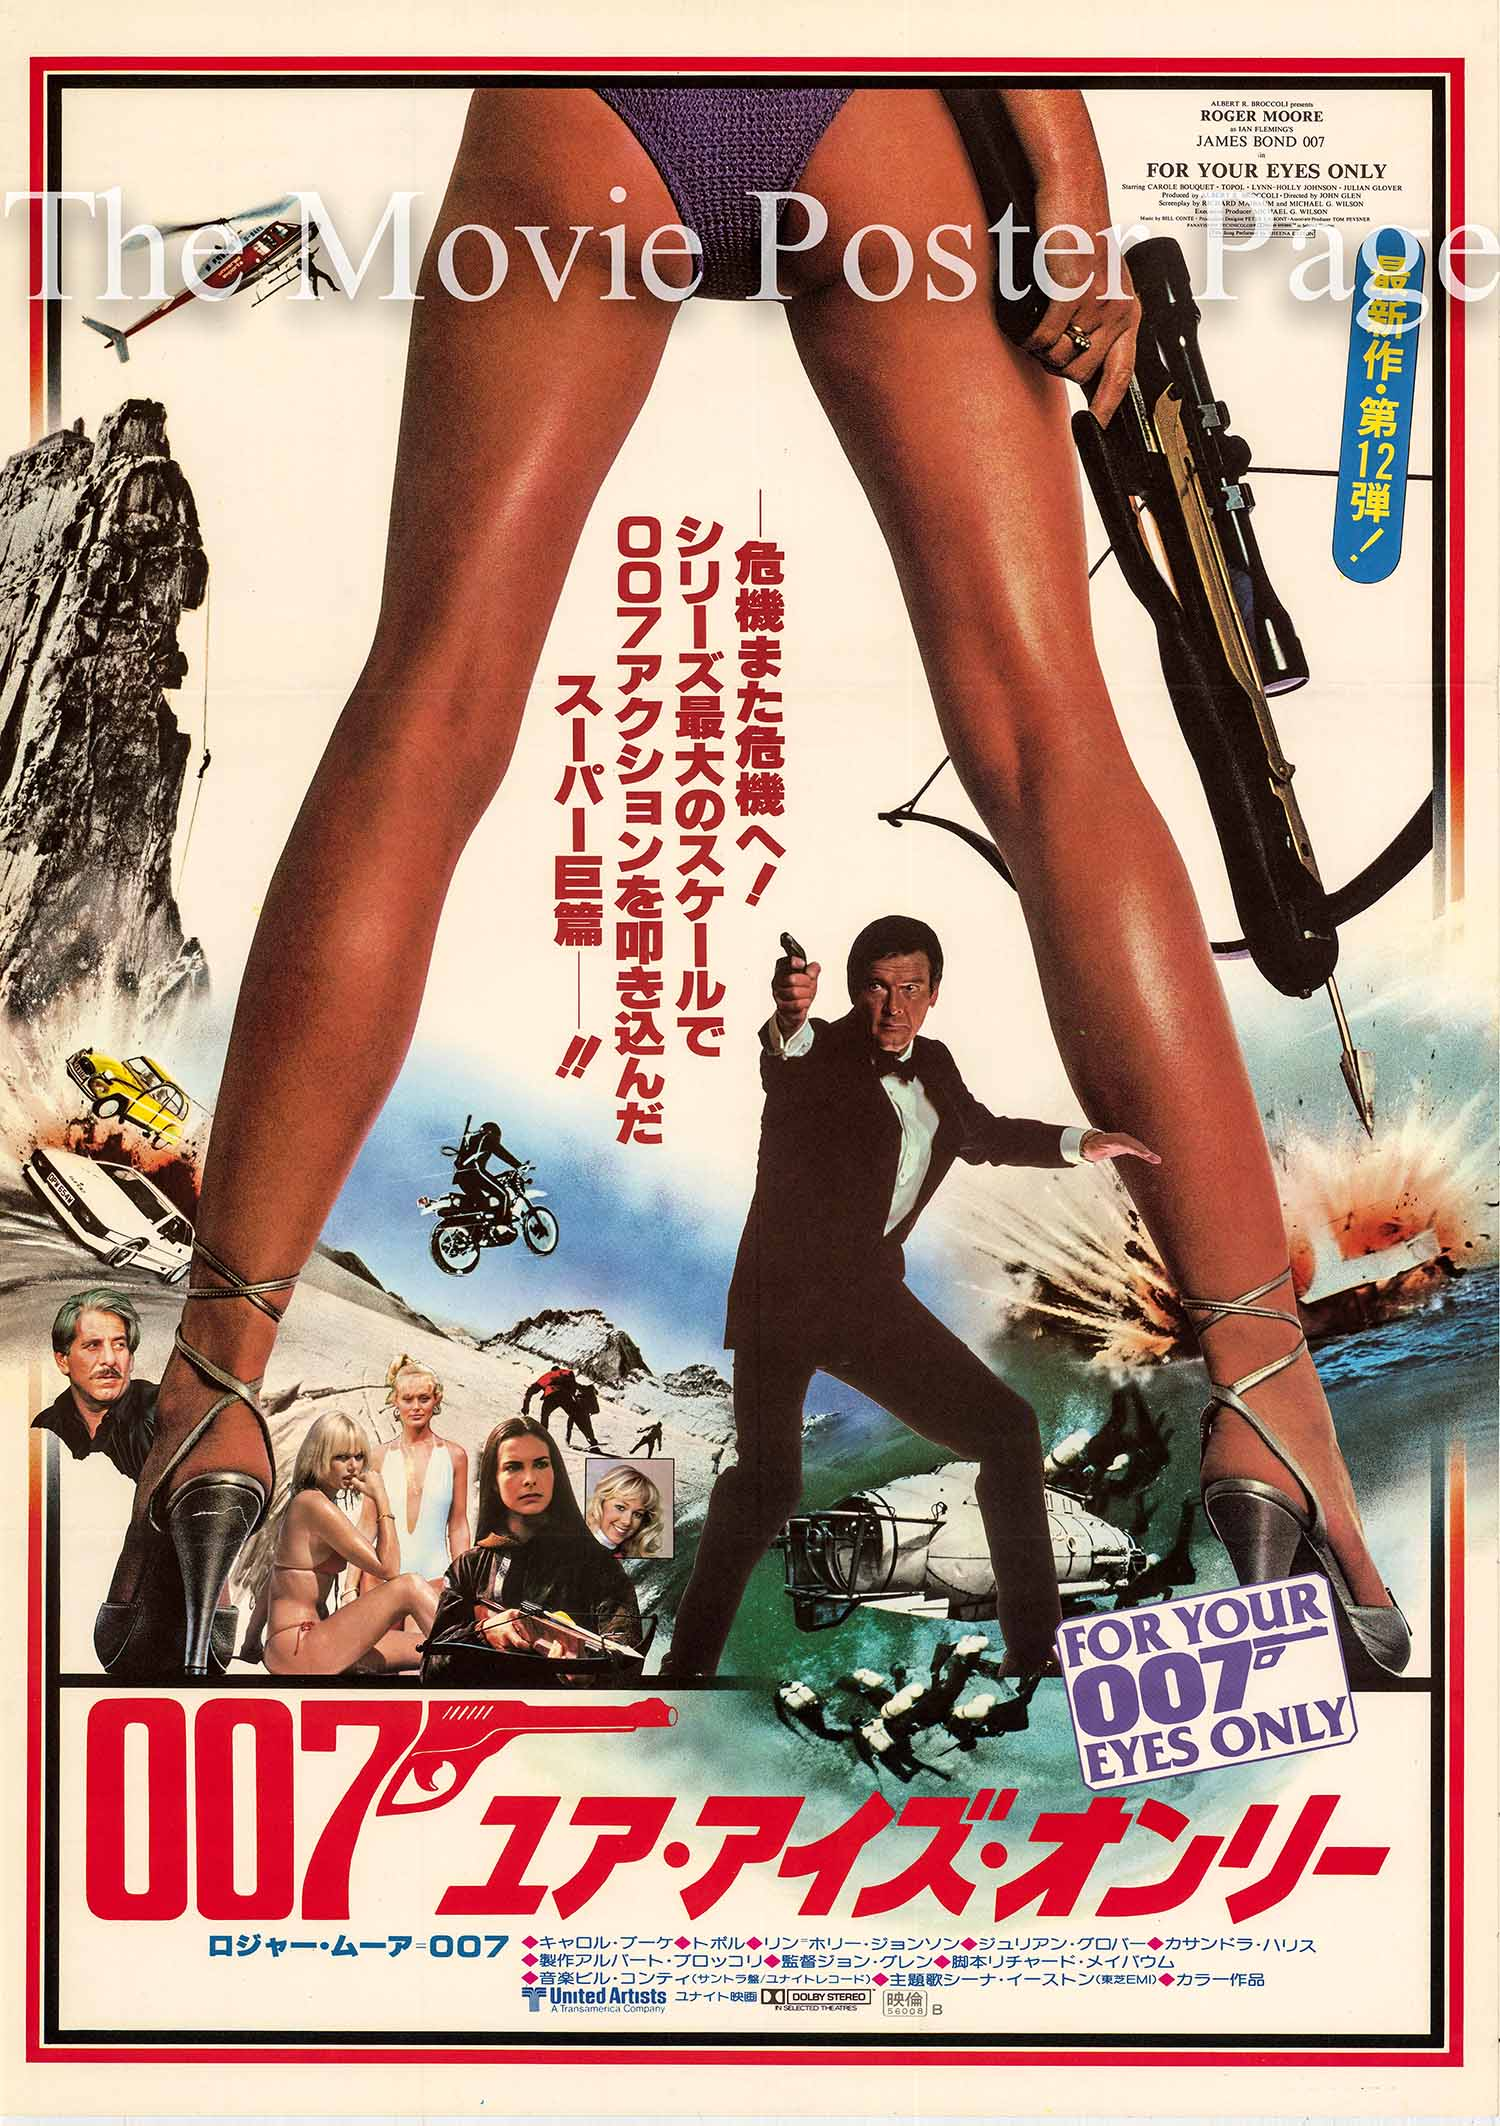 Pictured is a style B Japanese B2 promotional poster for the 1981 John Glen James Bond film For Your Eyes Only starring Roger Moore.